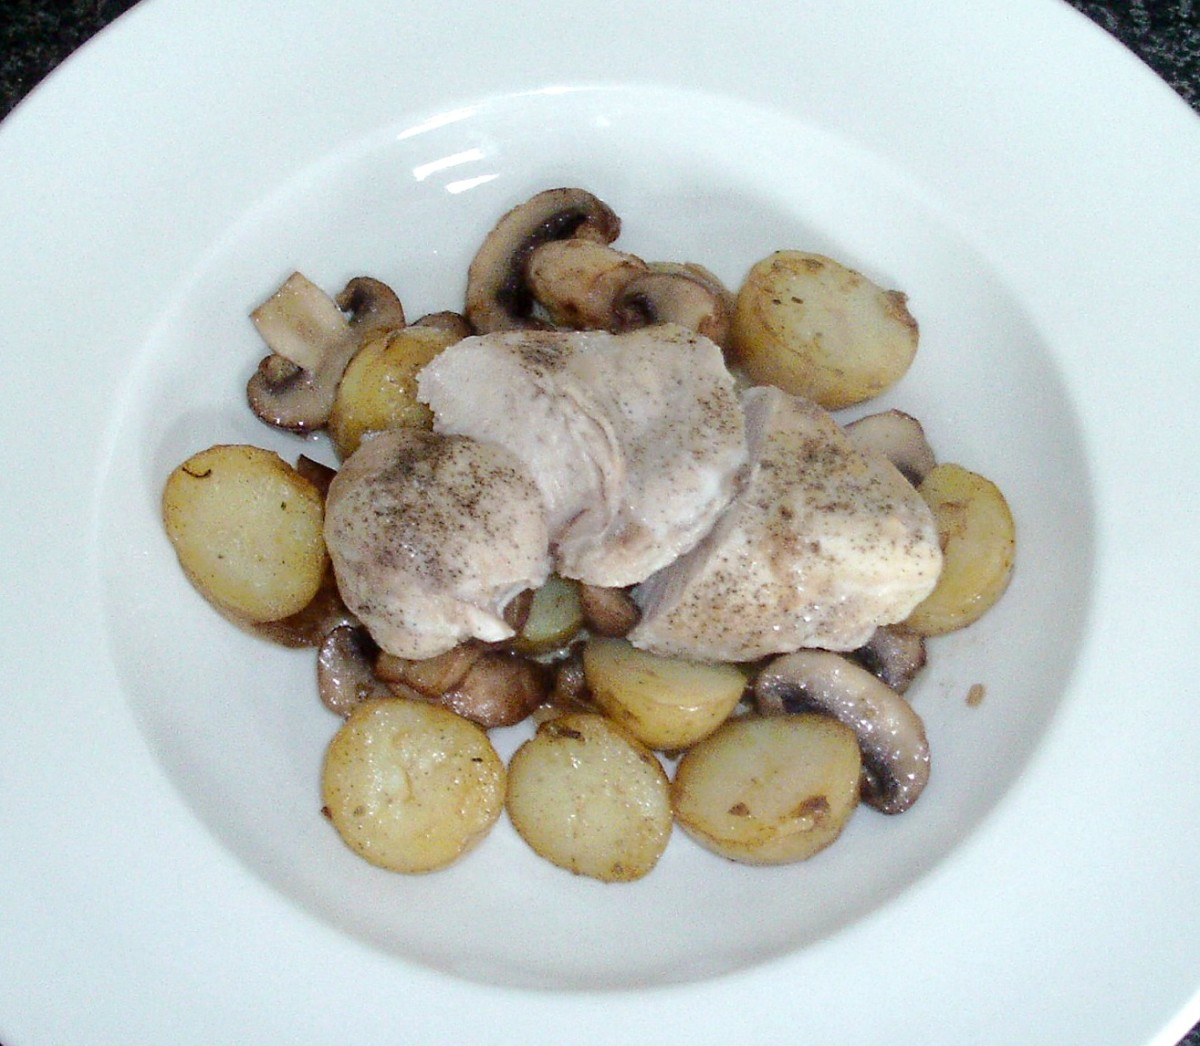 Simply baked chicken breast fillet is served on a bed of stir fried potatoes and mushrooms